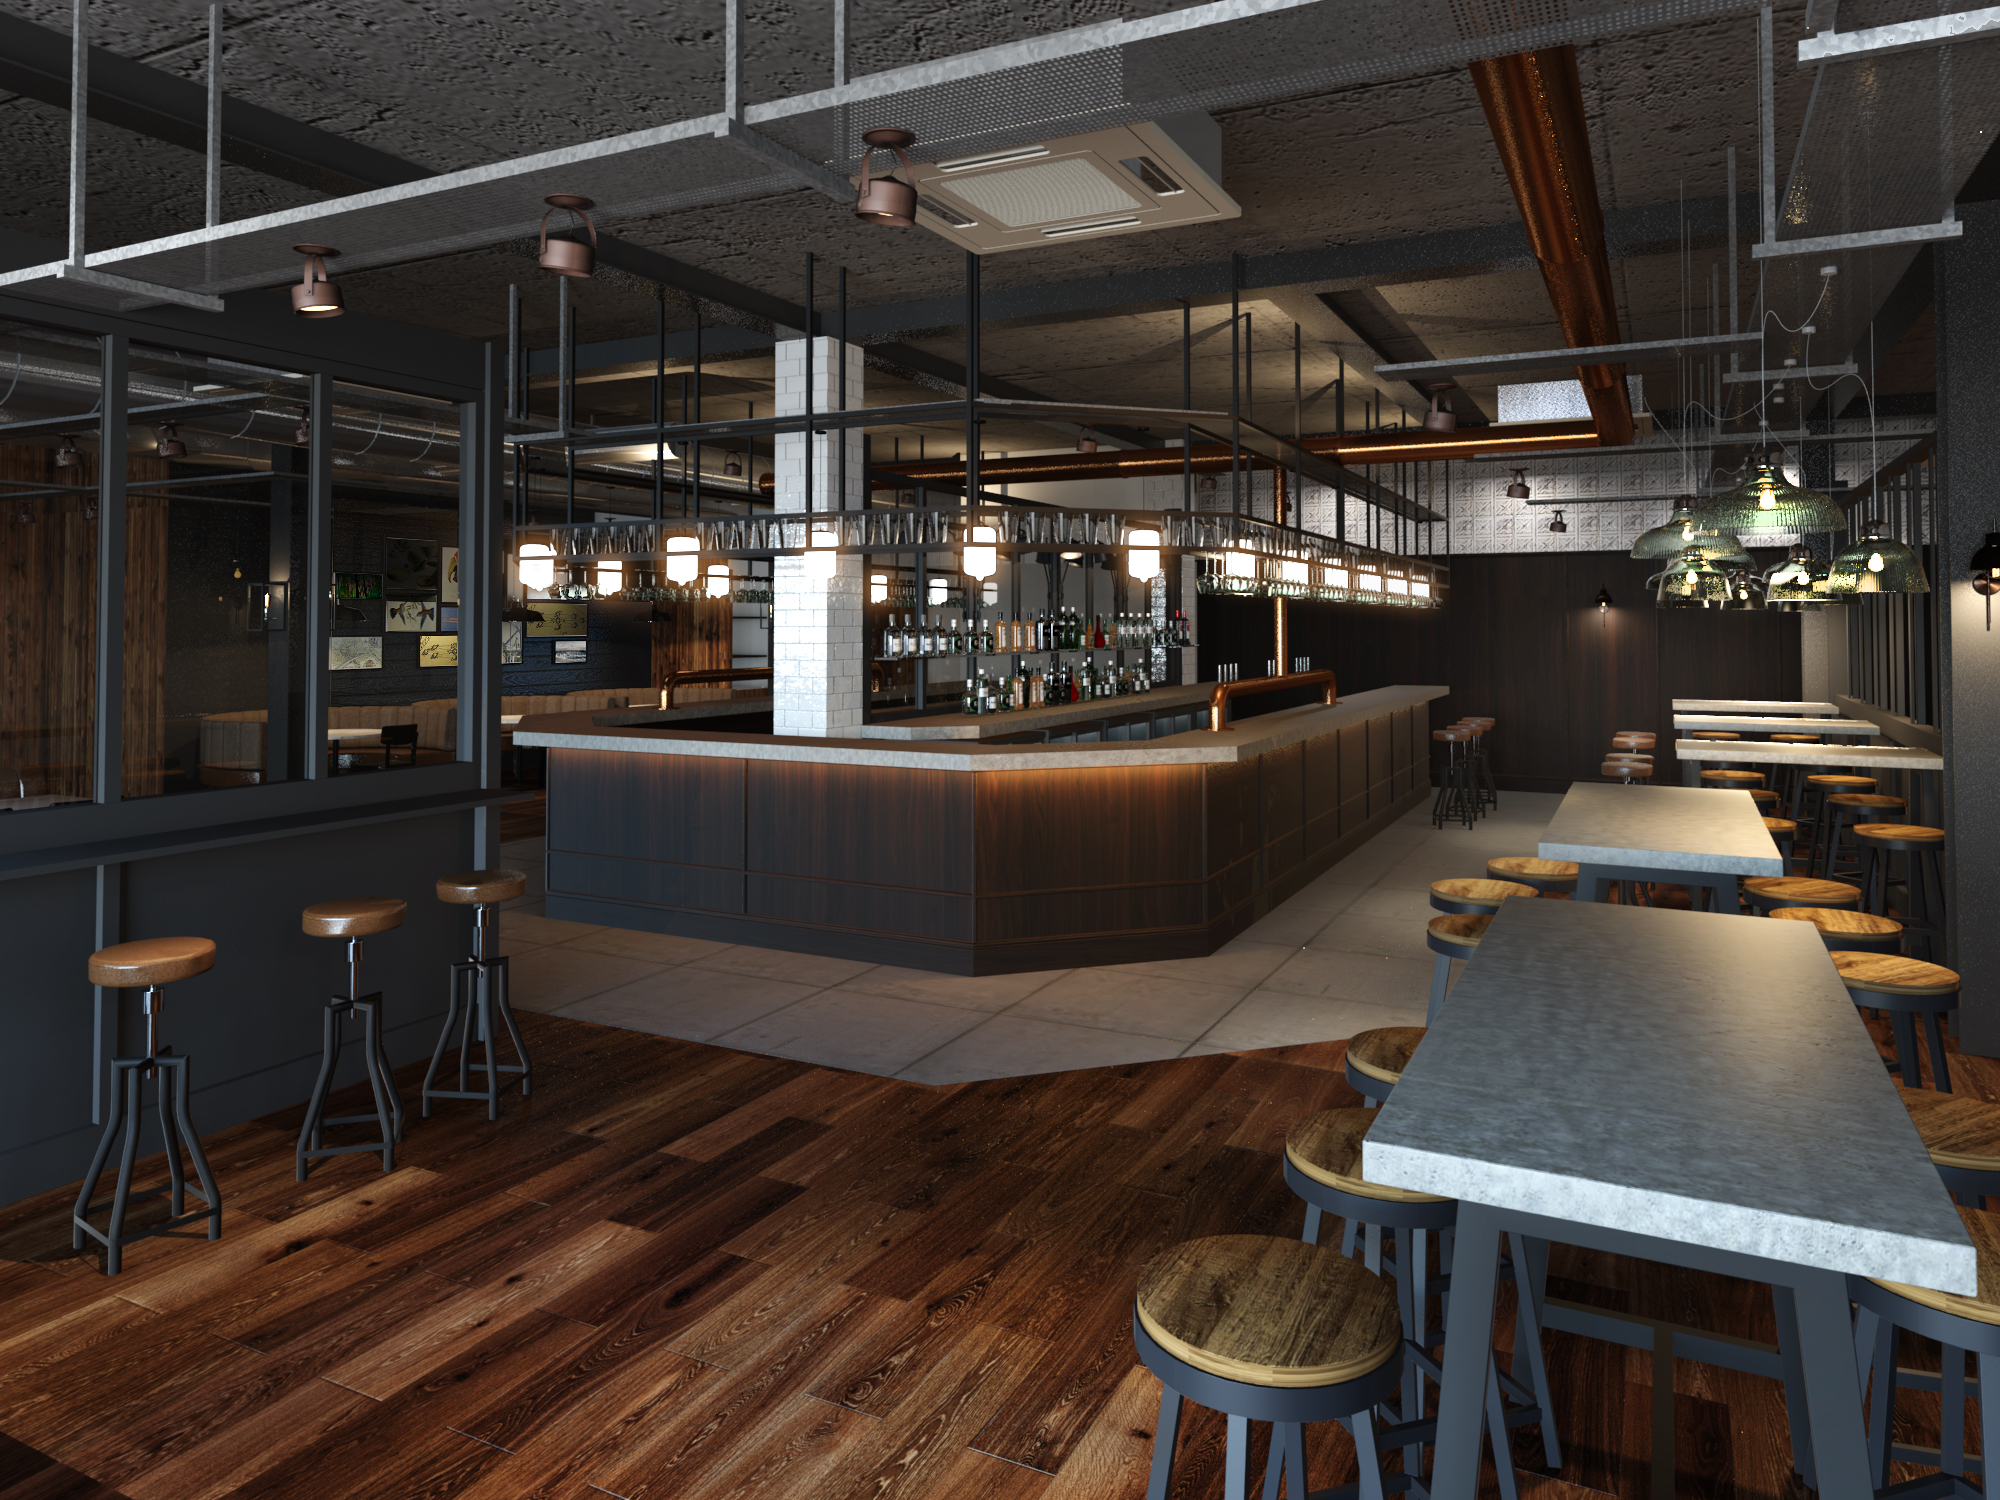 Gastro Design Gastro Pub Lifeforms Design Bar Designers And Restaurant